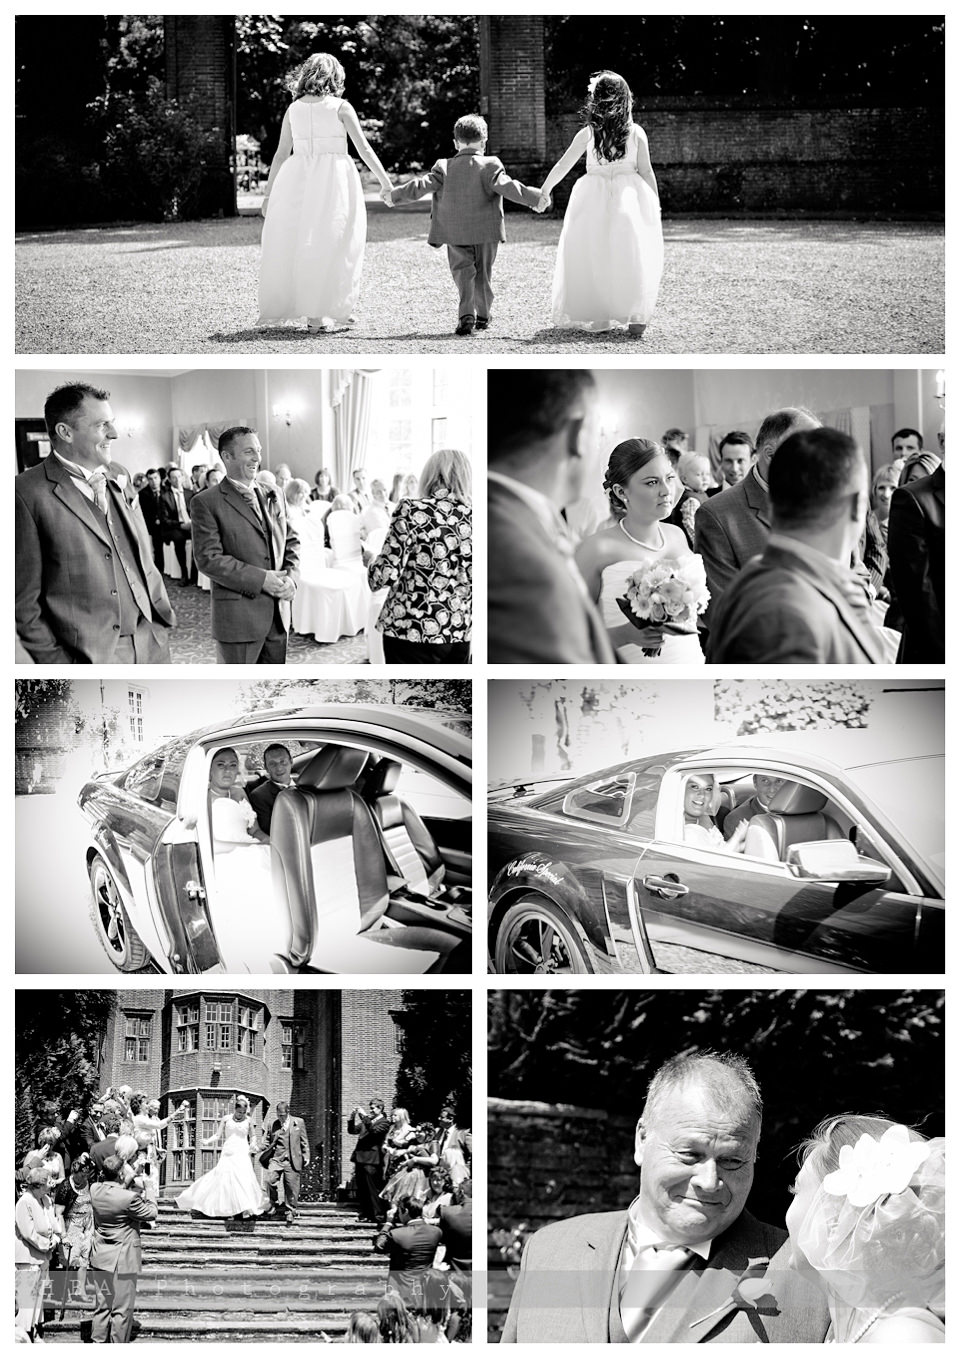 The wedding of Sam & Alan at New Place, Southampton. By contemporary photographers HBA Photography. The ceremony